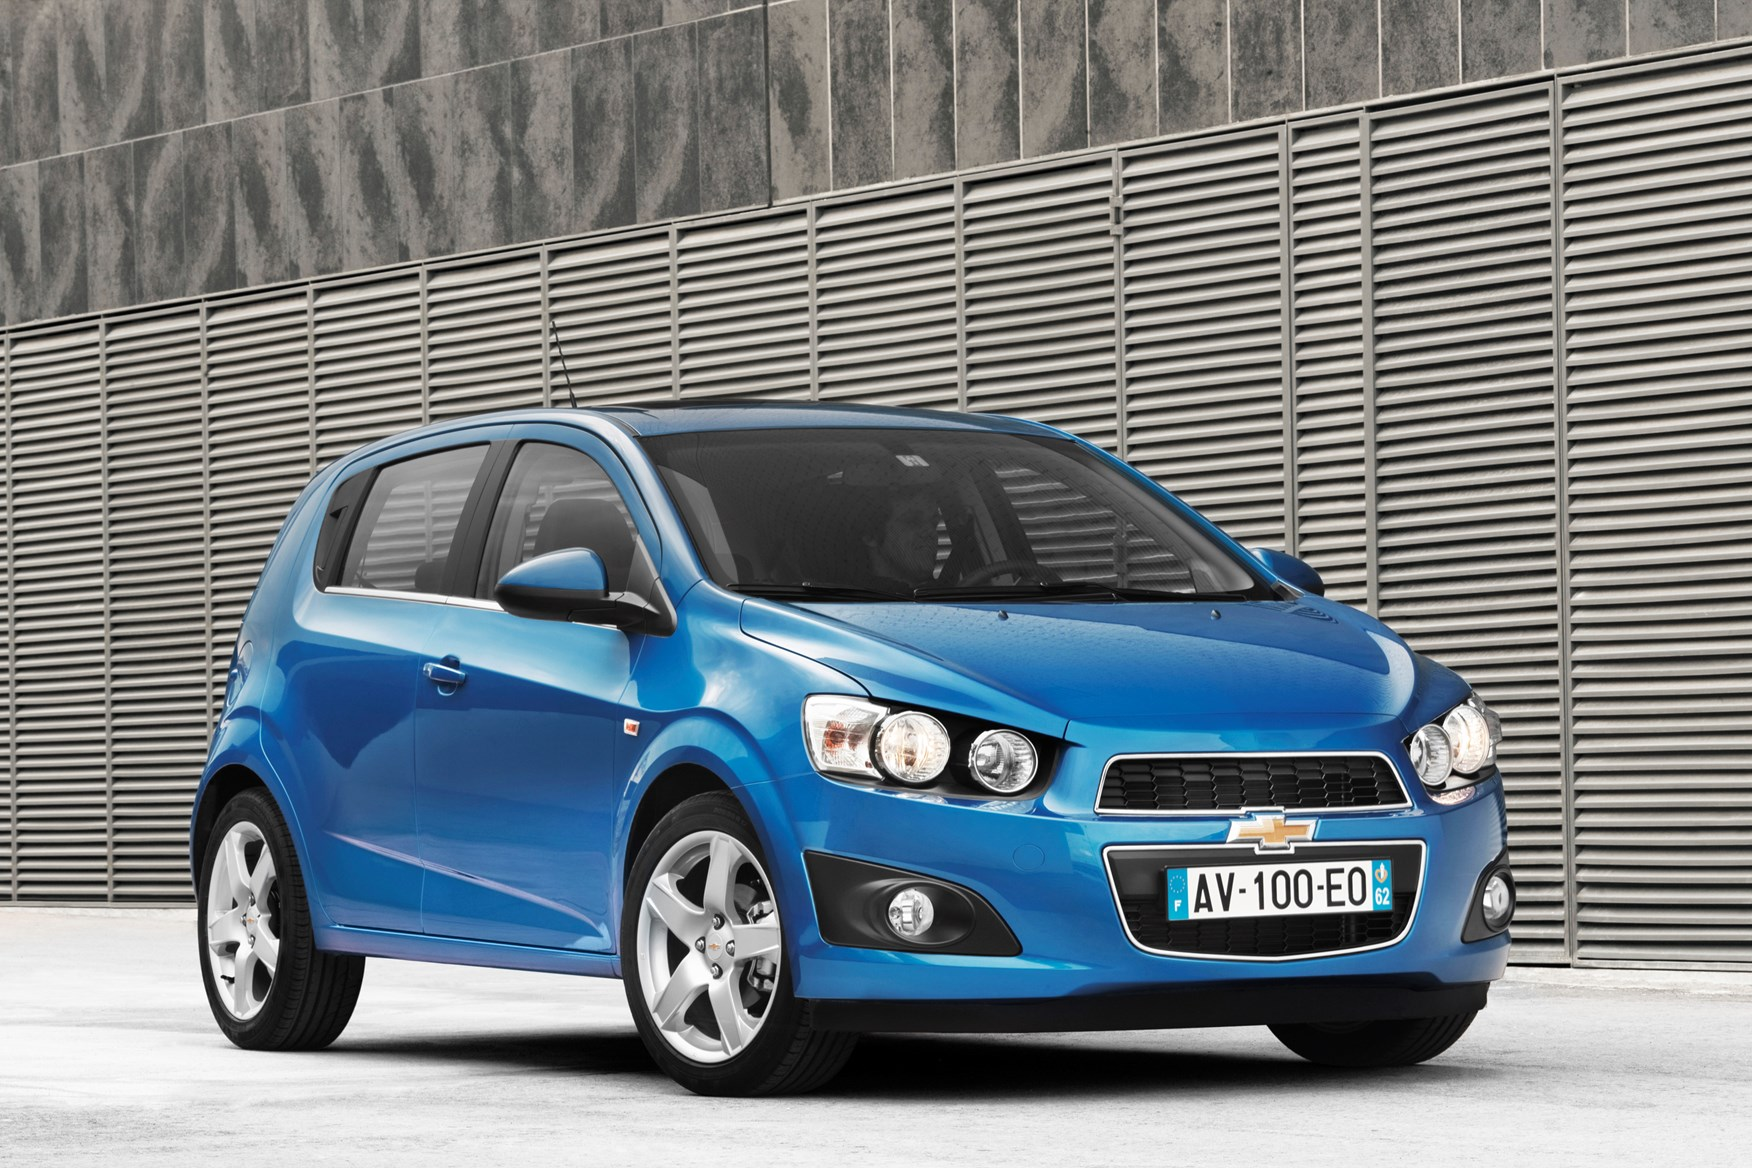 chevrolet aveo hatchback review 2011 2015 parkers. Black Bedroom Furniture Sets. Home Design Ideas